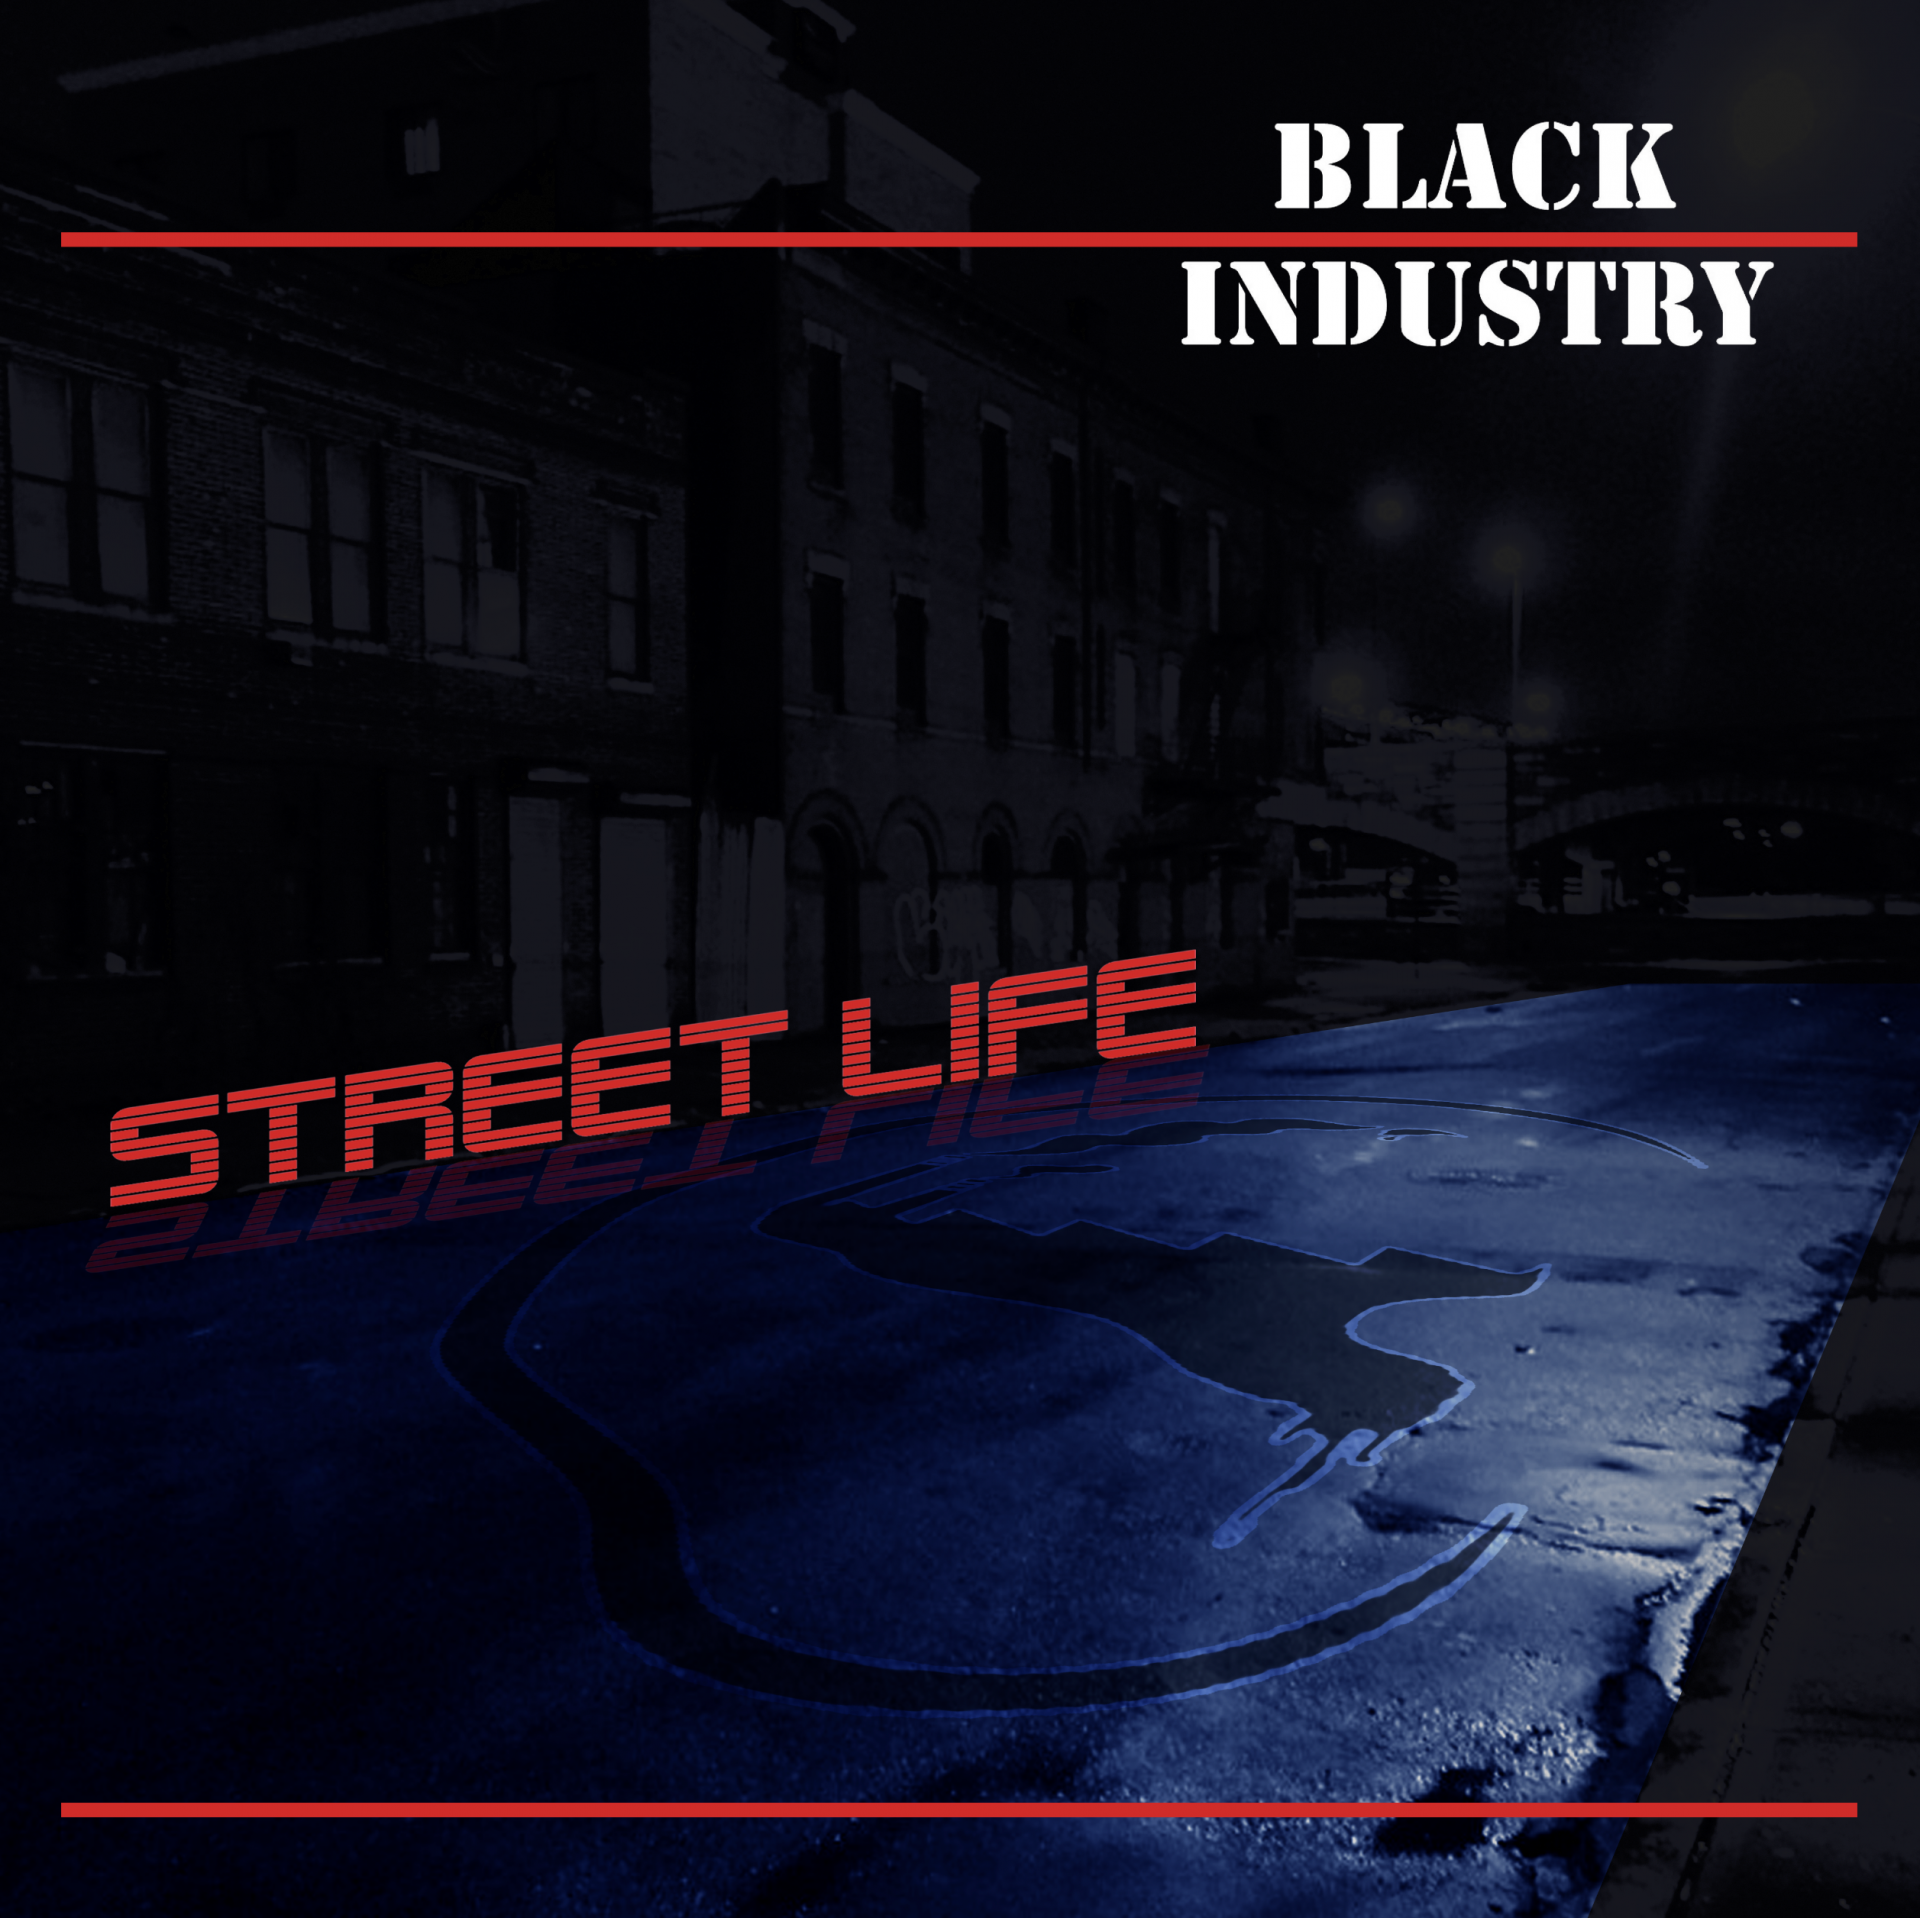 Pochette CD Black industry